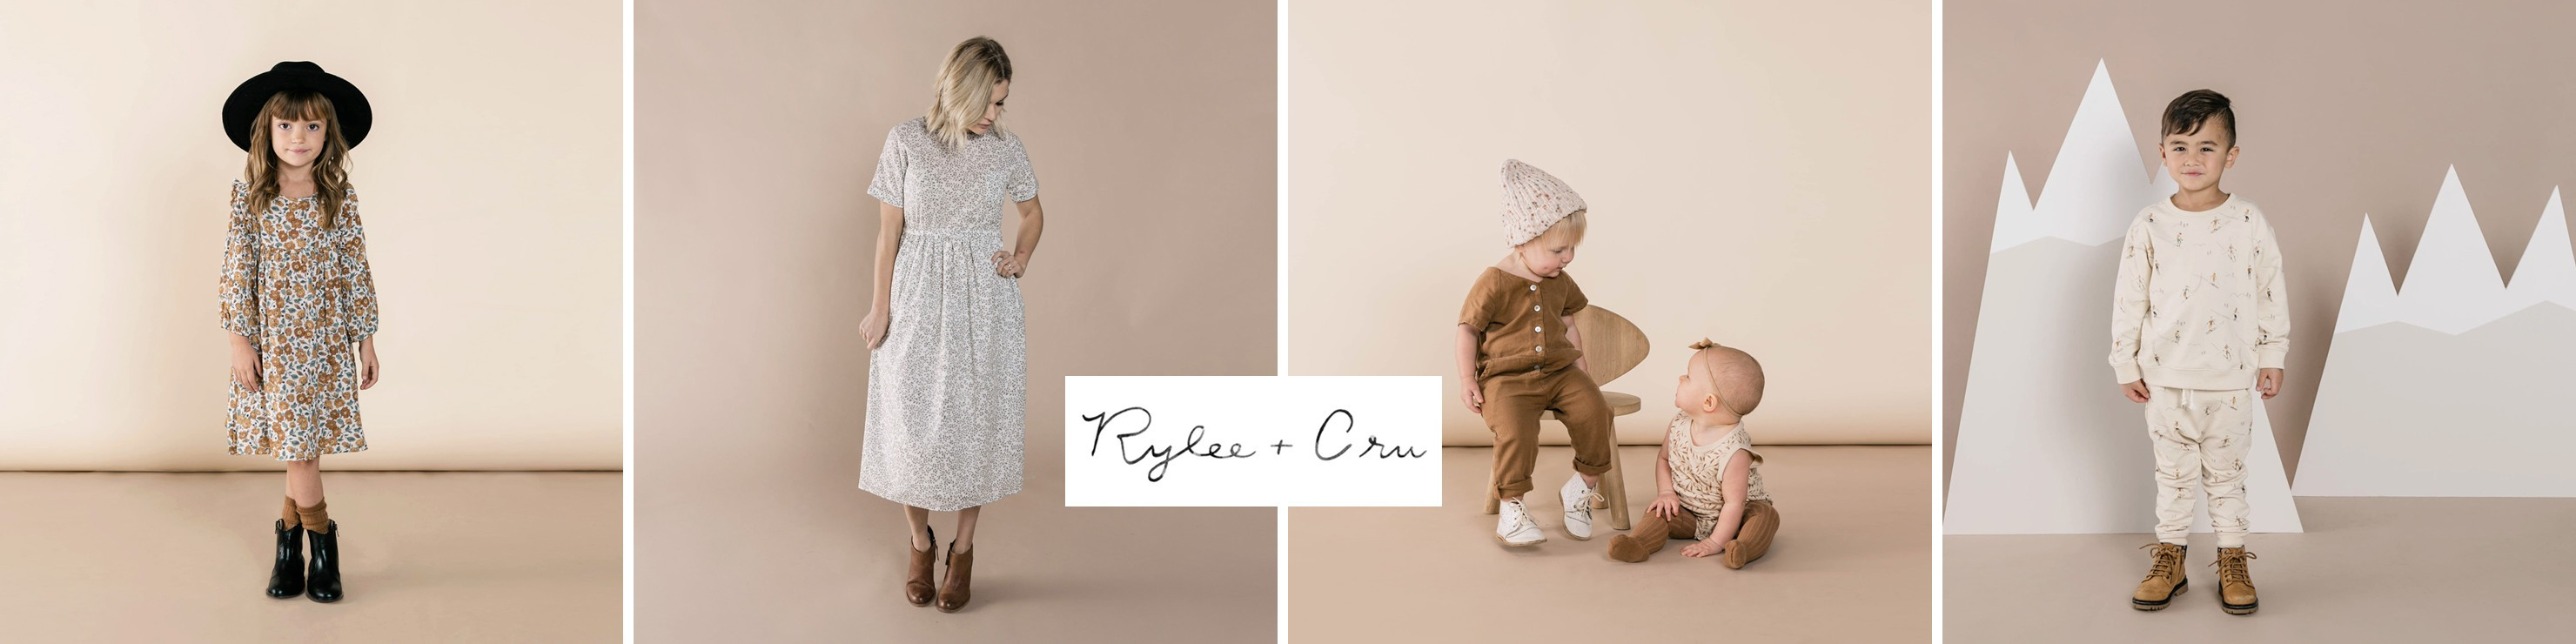 Collection Snowbird de Rylee & Cru, vêtements certifiés Oeko-Tex